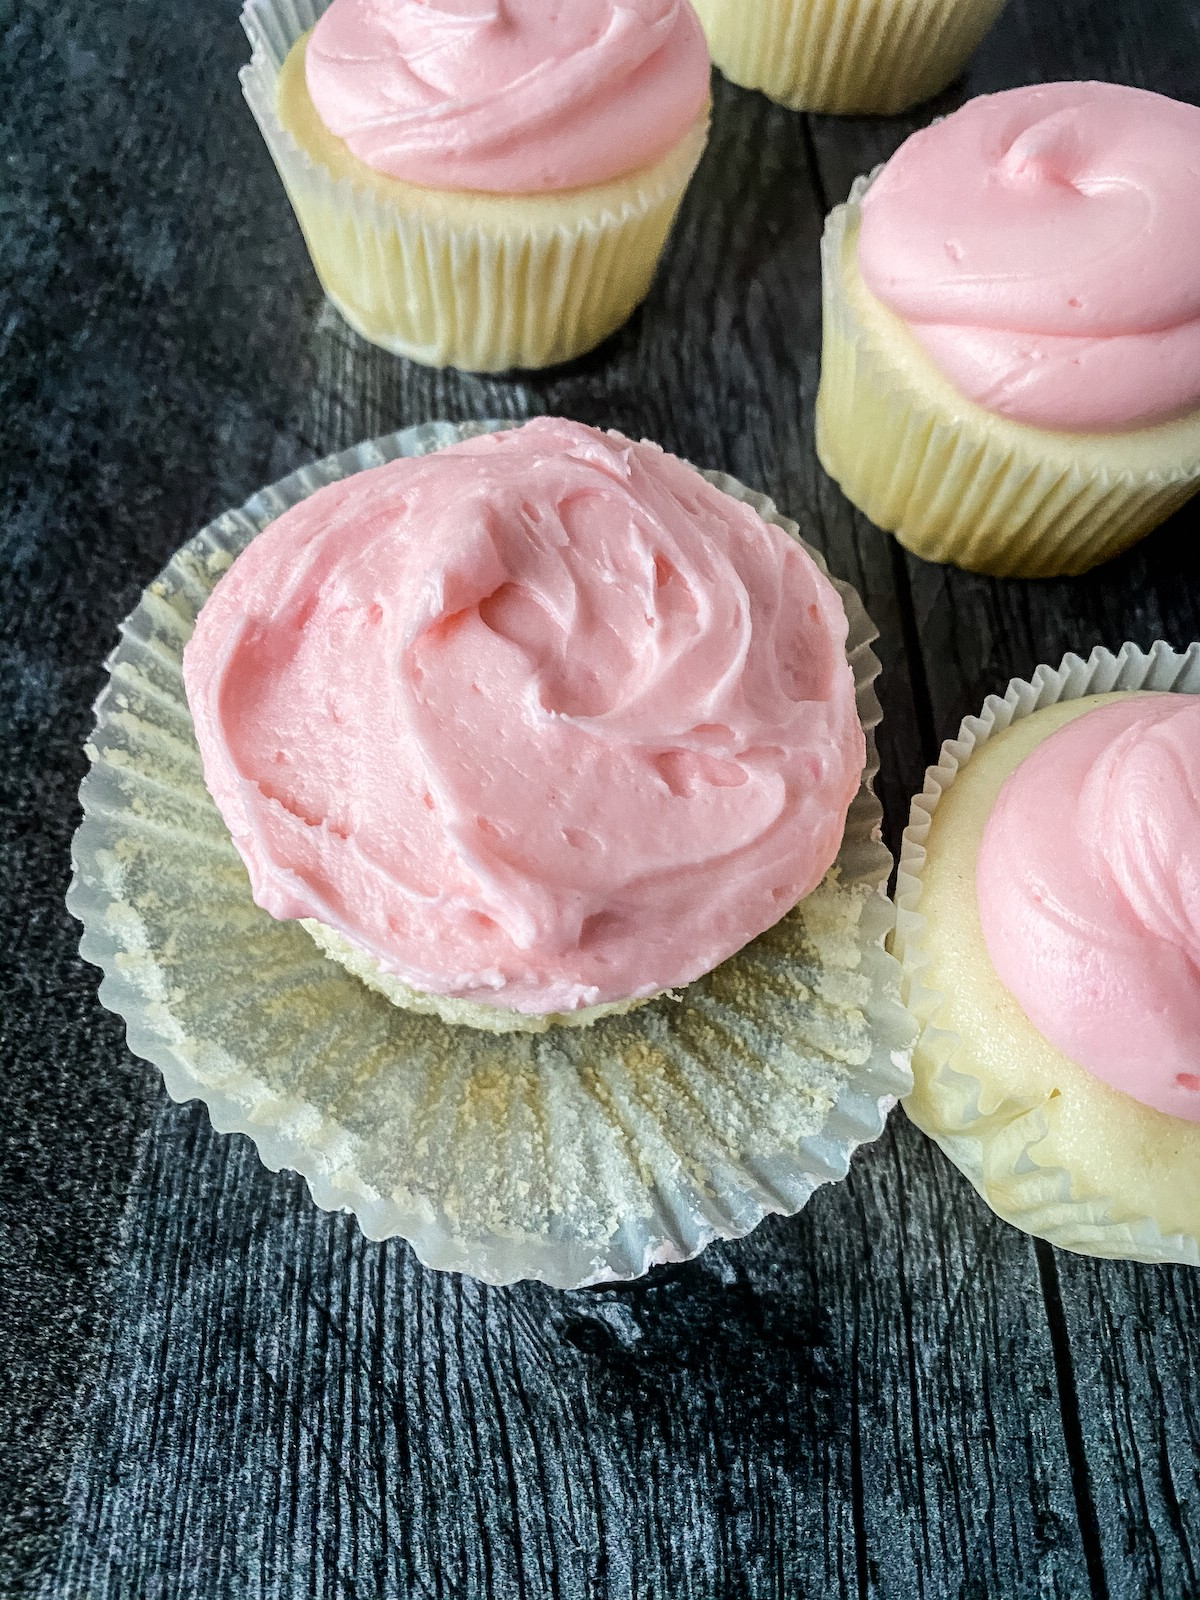 Cupcakes with pink icing on wood